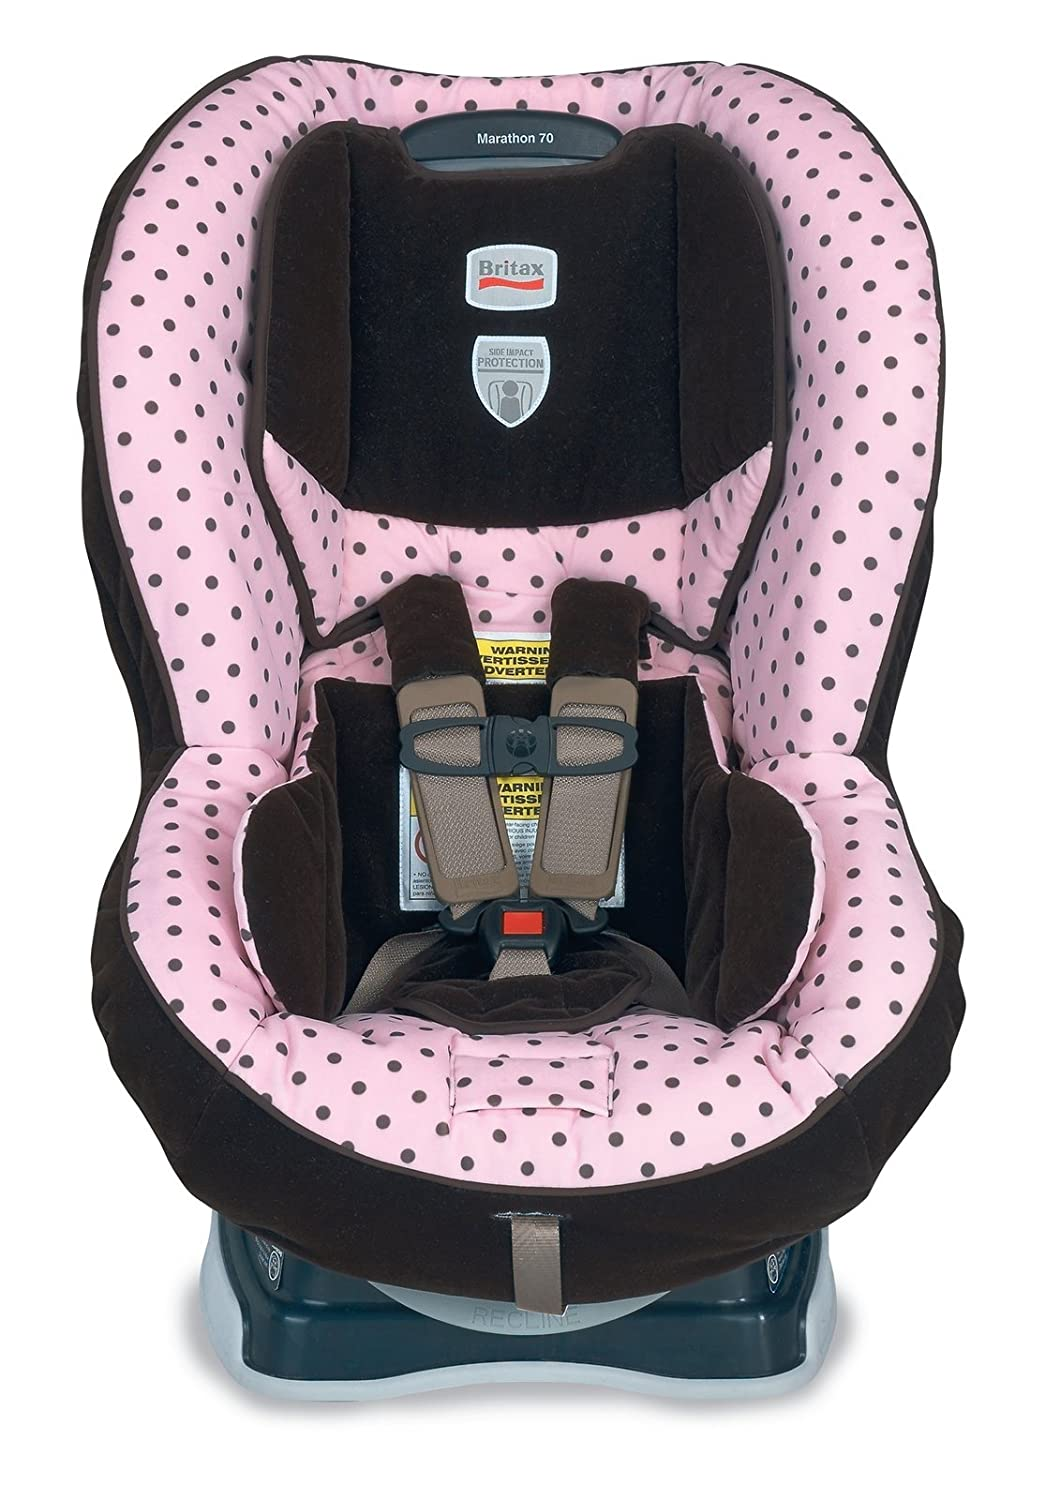 britax marathon 70 car seat replacement cover velcromag. Black Bedroom Furniture Sets. Home Design Ideas